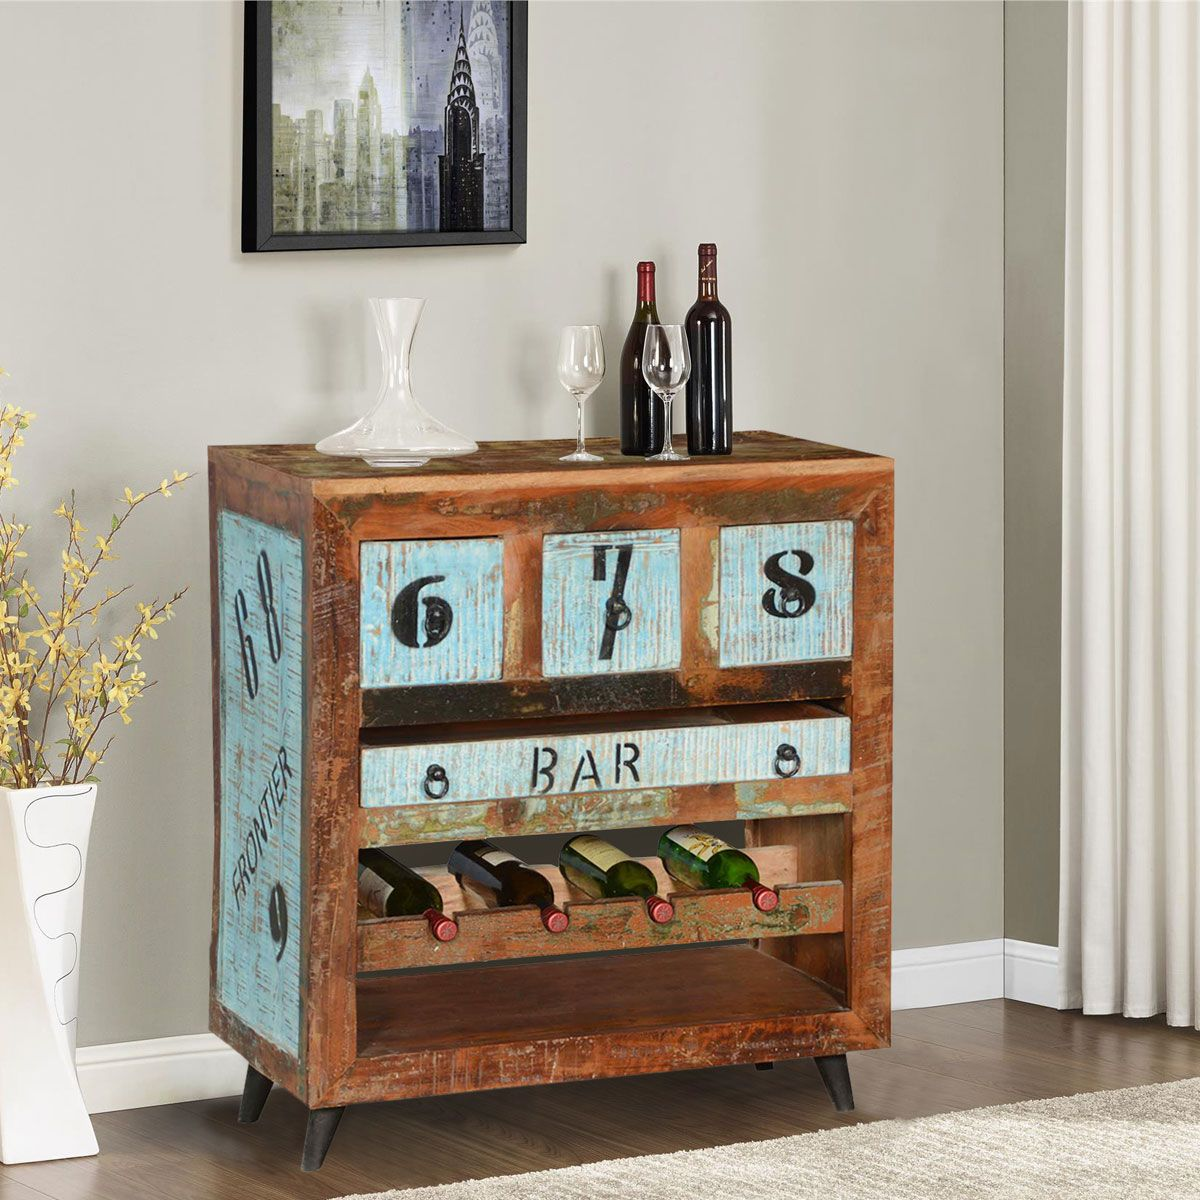 Sierra living concepts by the numbers reclaimed wood wine rack bar cabinet bars bar stools rustic farmhouse furniture wine racks cabinets art